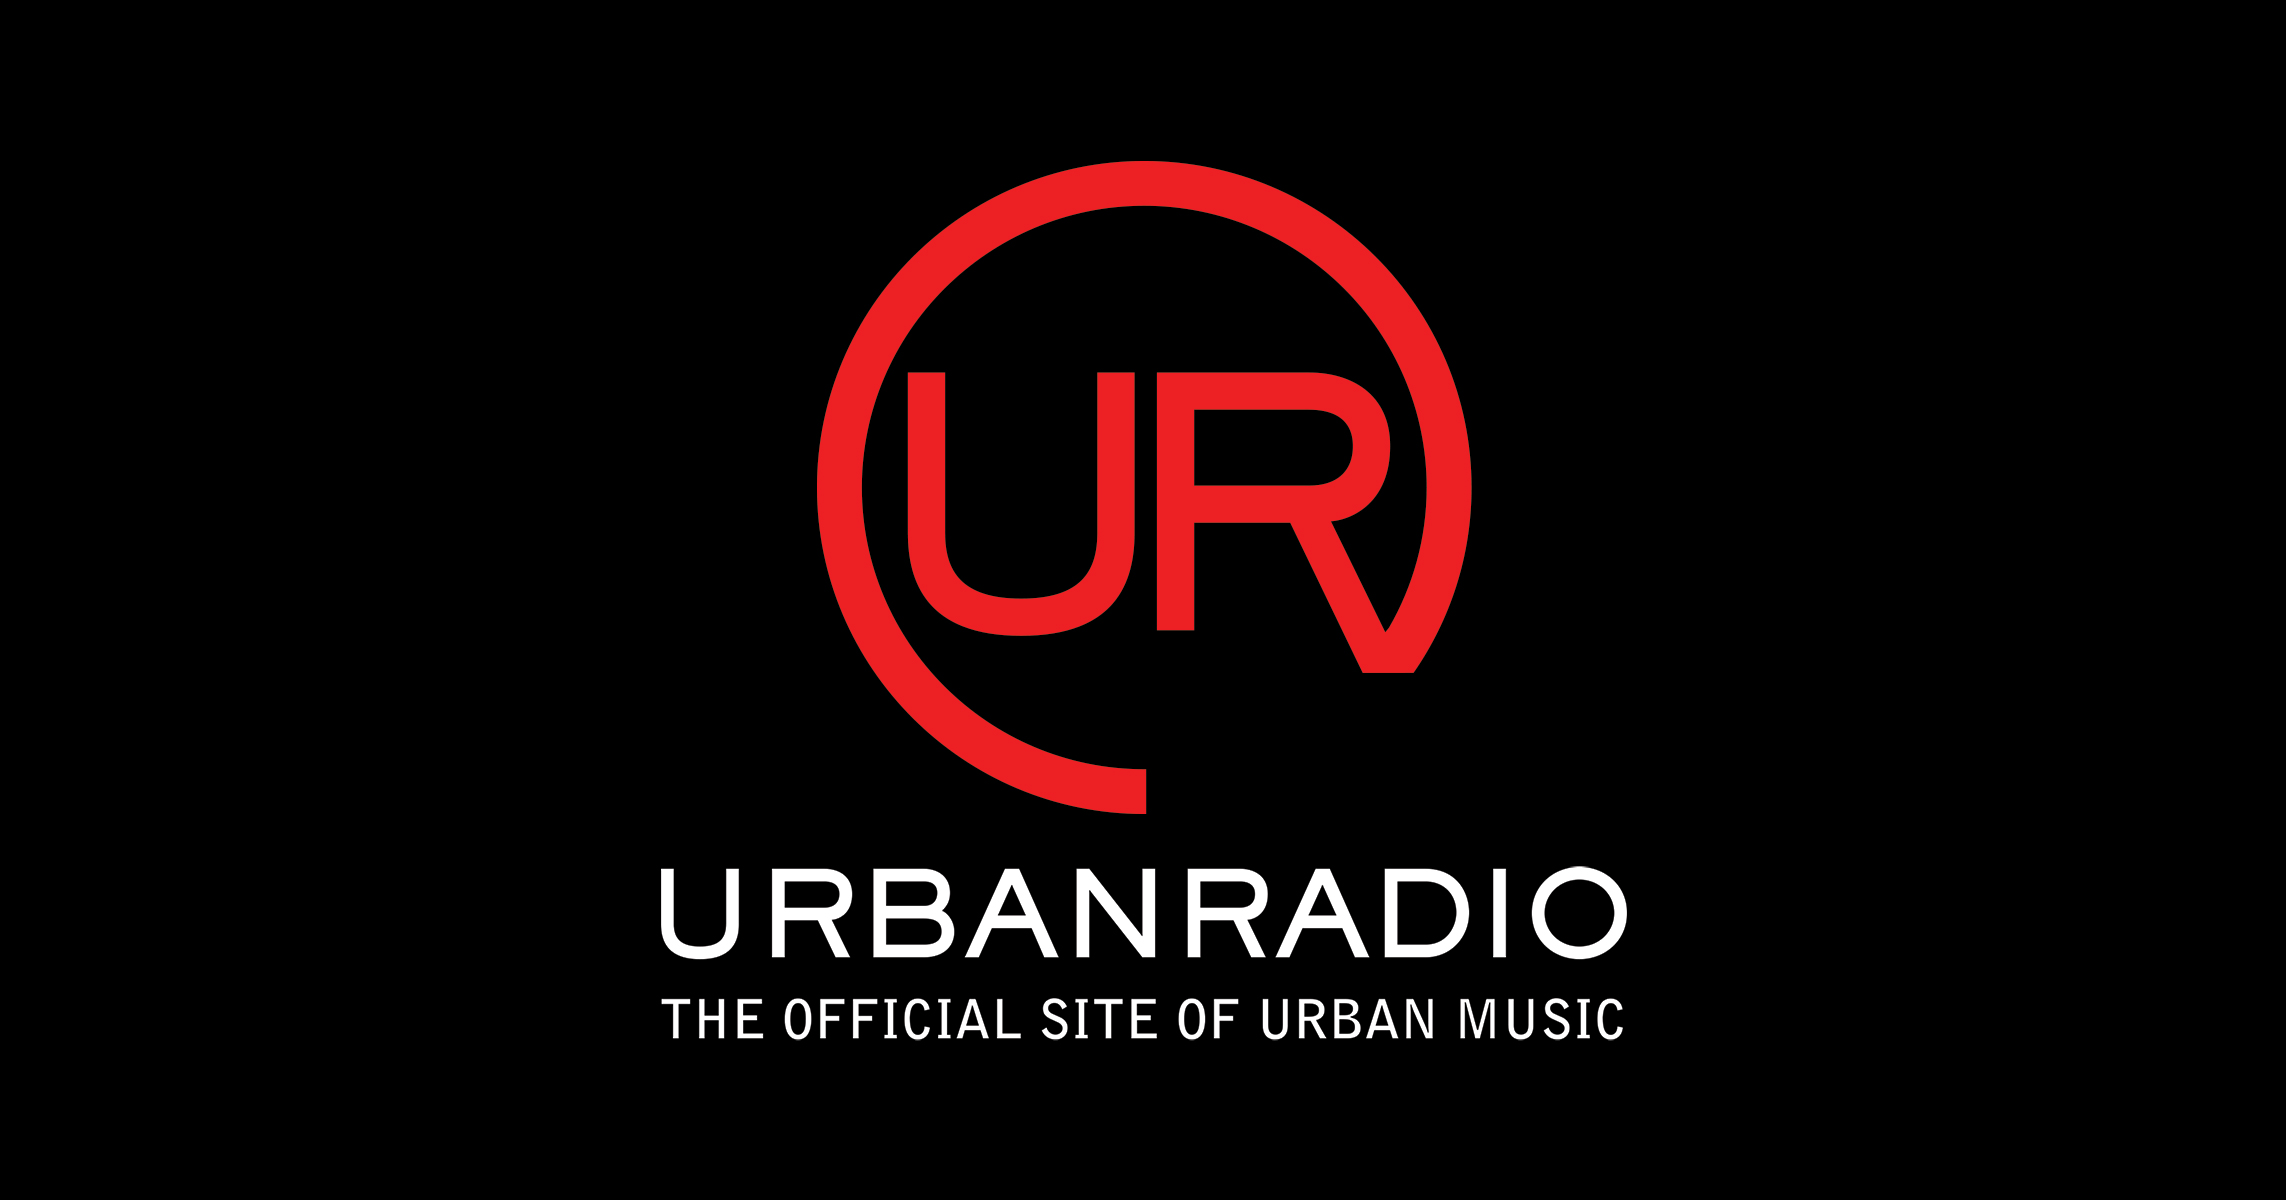 Urbanradio com: ALL The Urban Music Hits Online | 12 Station Choices